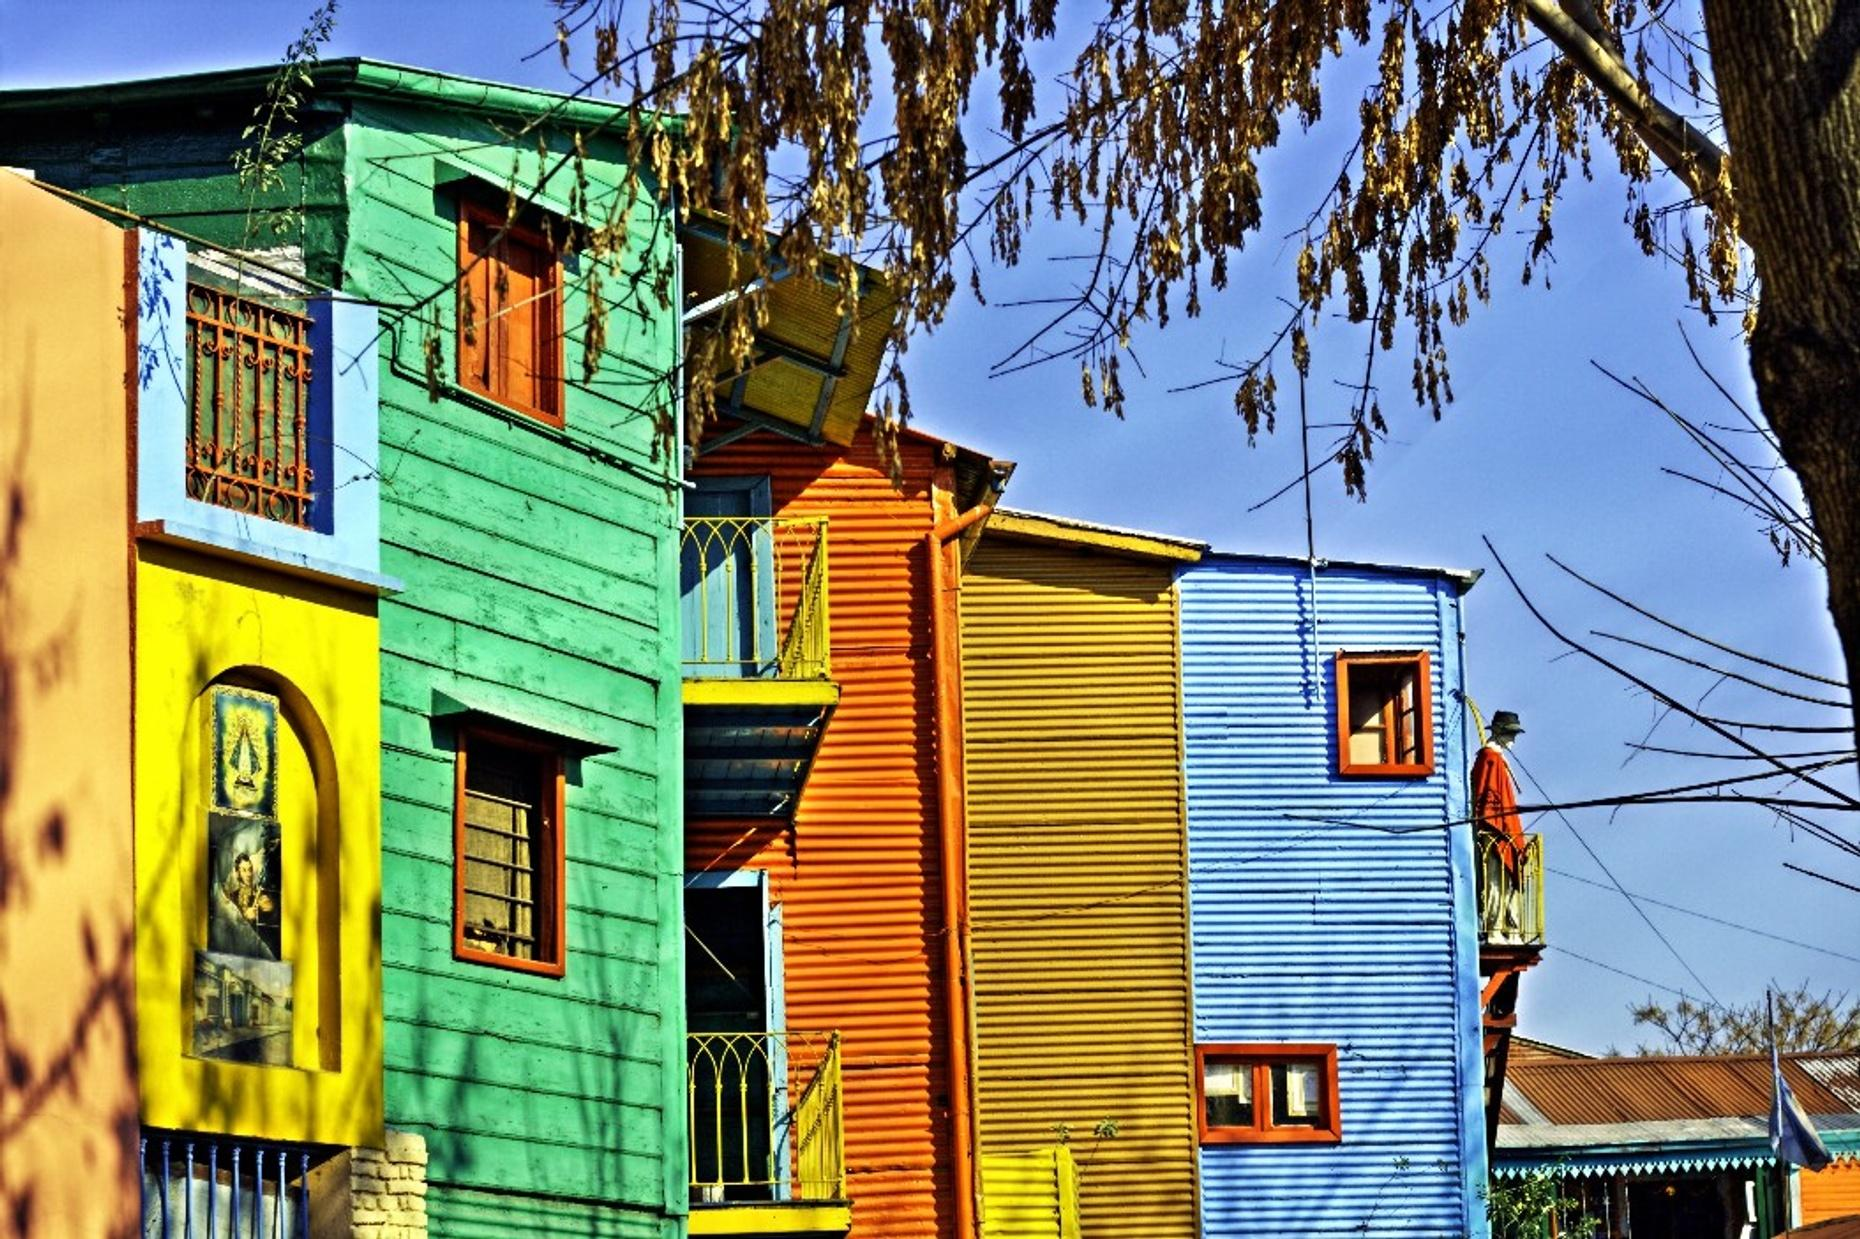 Guided Tour of La Boca in Buenos Aires